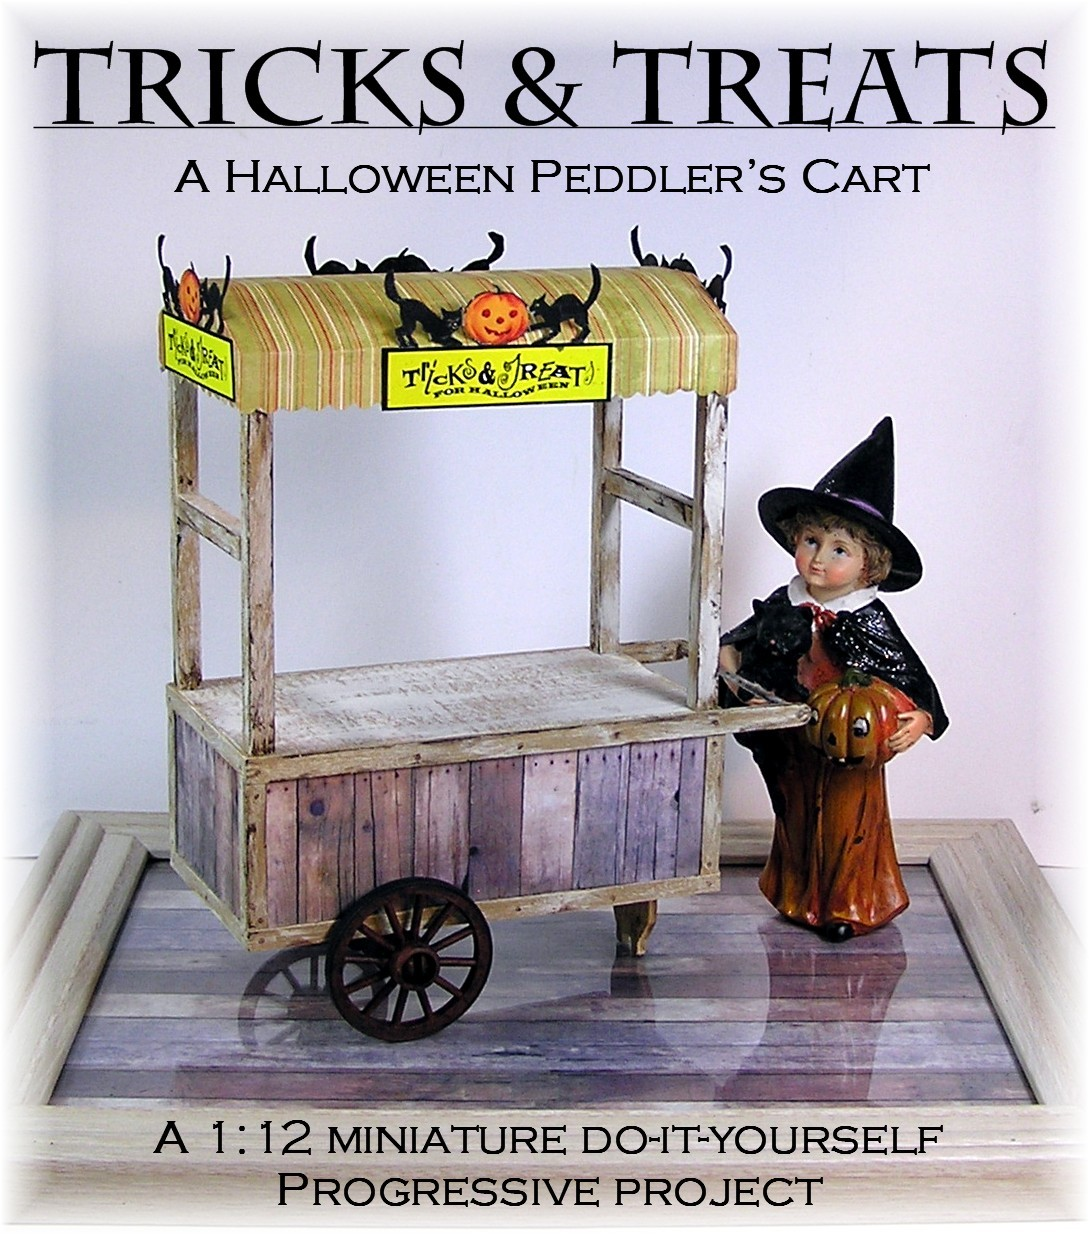 DYI DOLLHOUSE MINIATURES: A HALLOWEEN PEDDLER'S CART